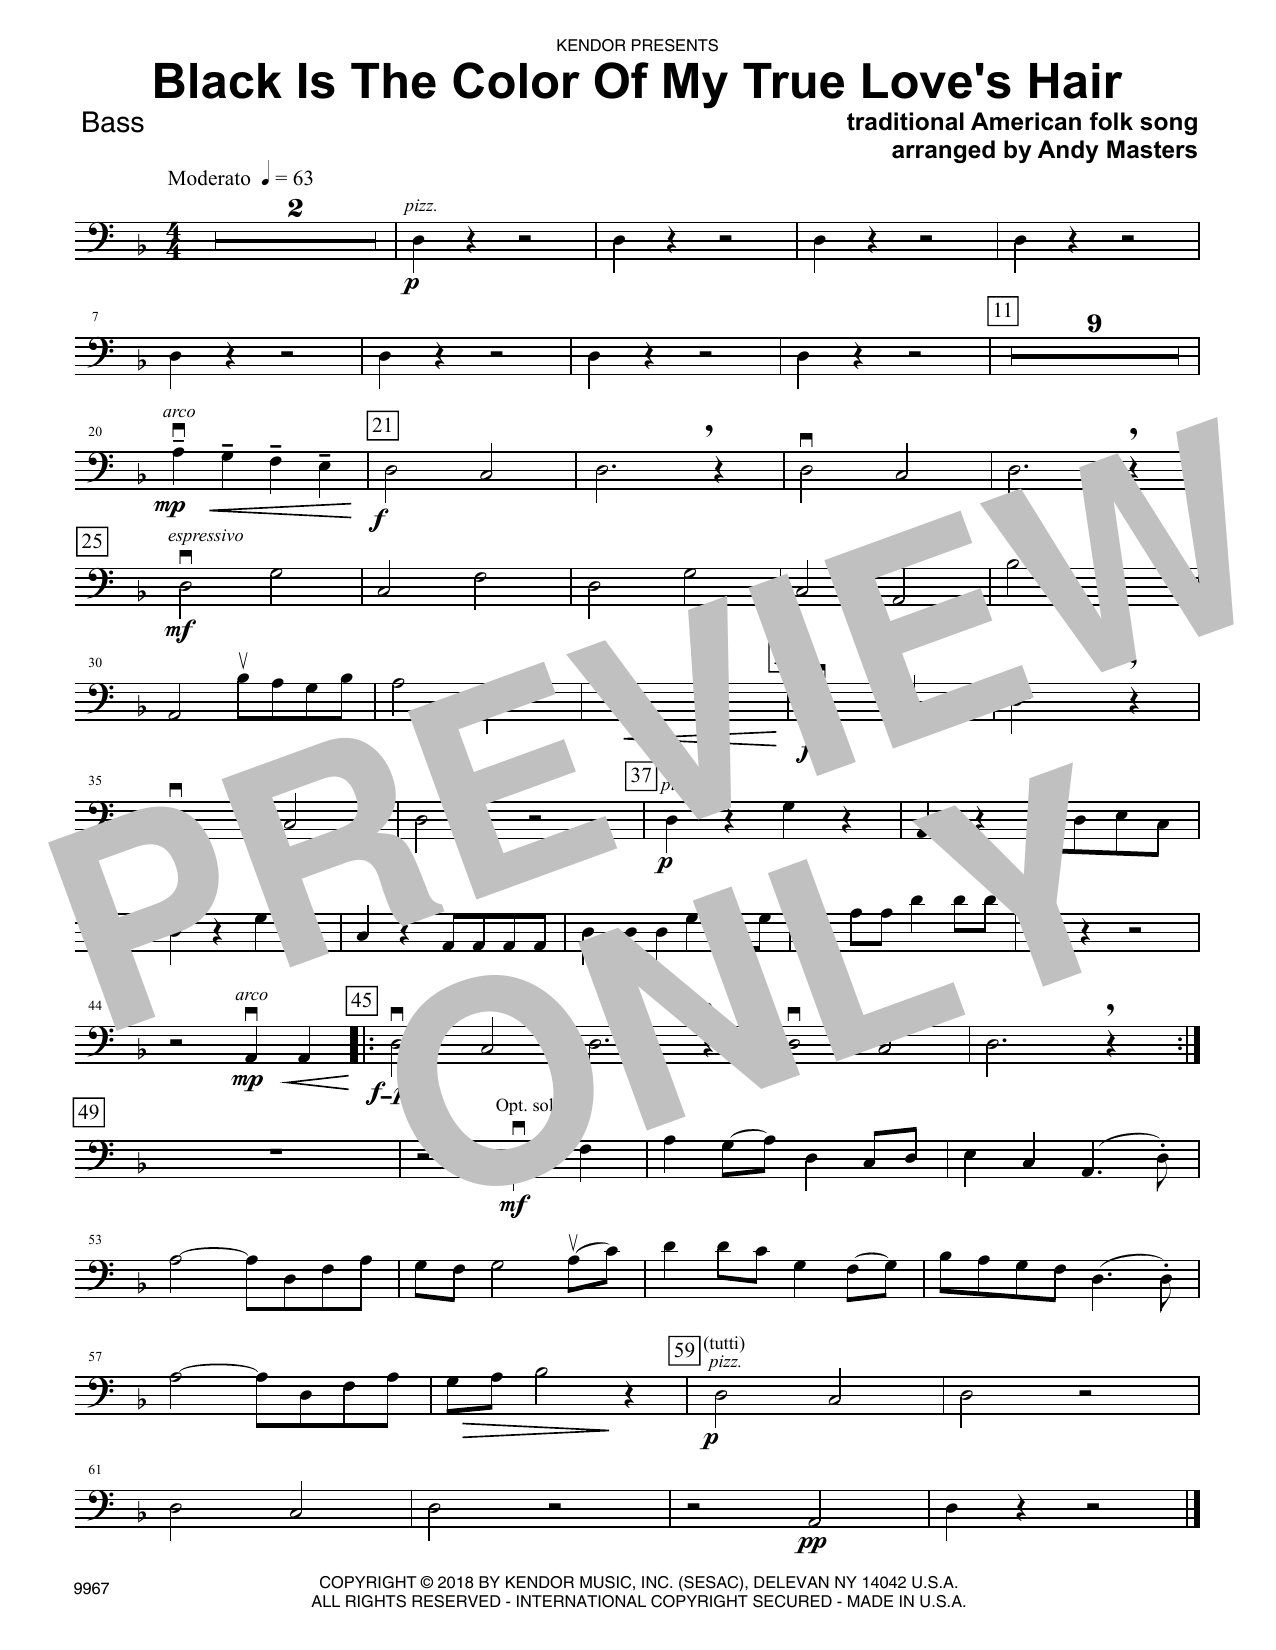 Andy Masters Black Is The Color of My True Love's Hair - Bass sheet music preview music notes and score for Orchestra including 1 page(s)